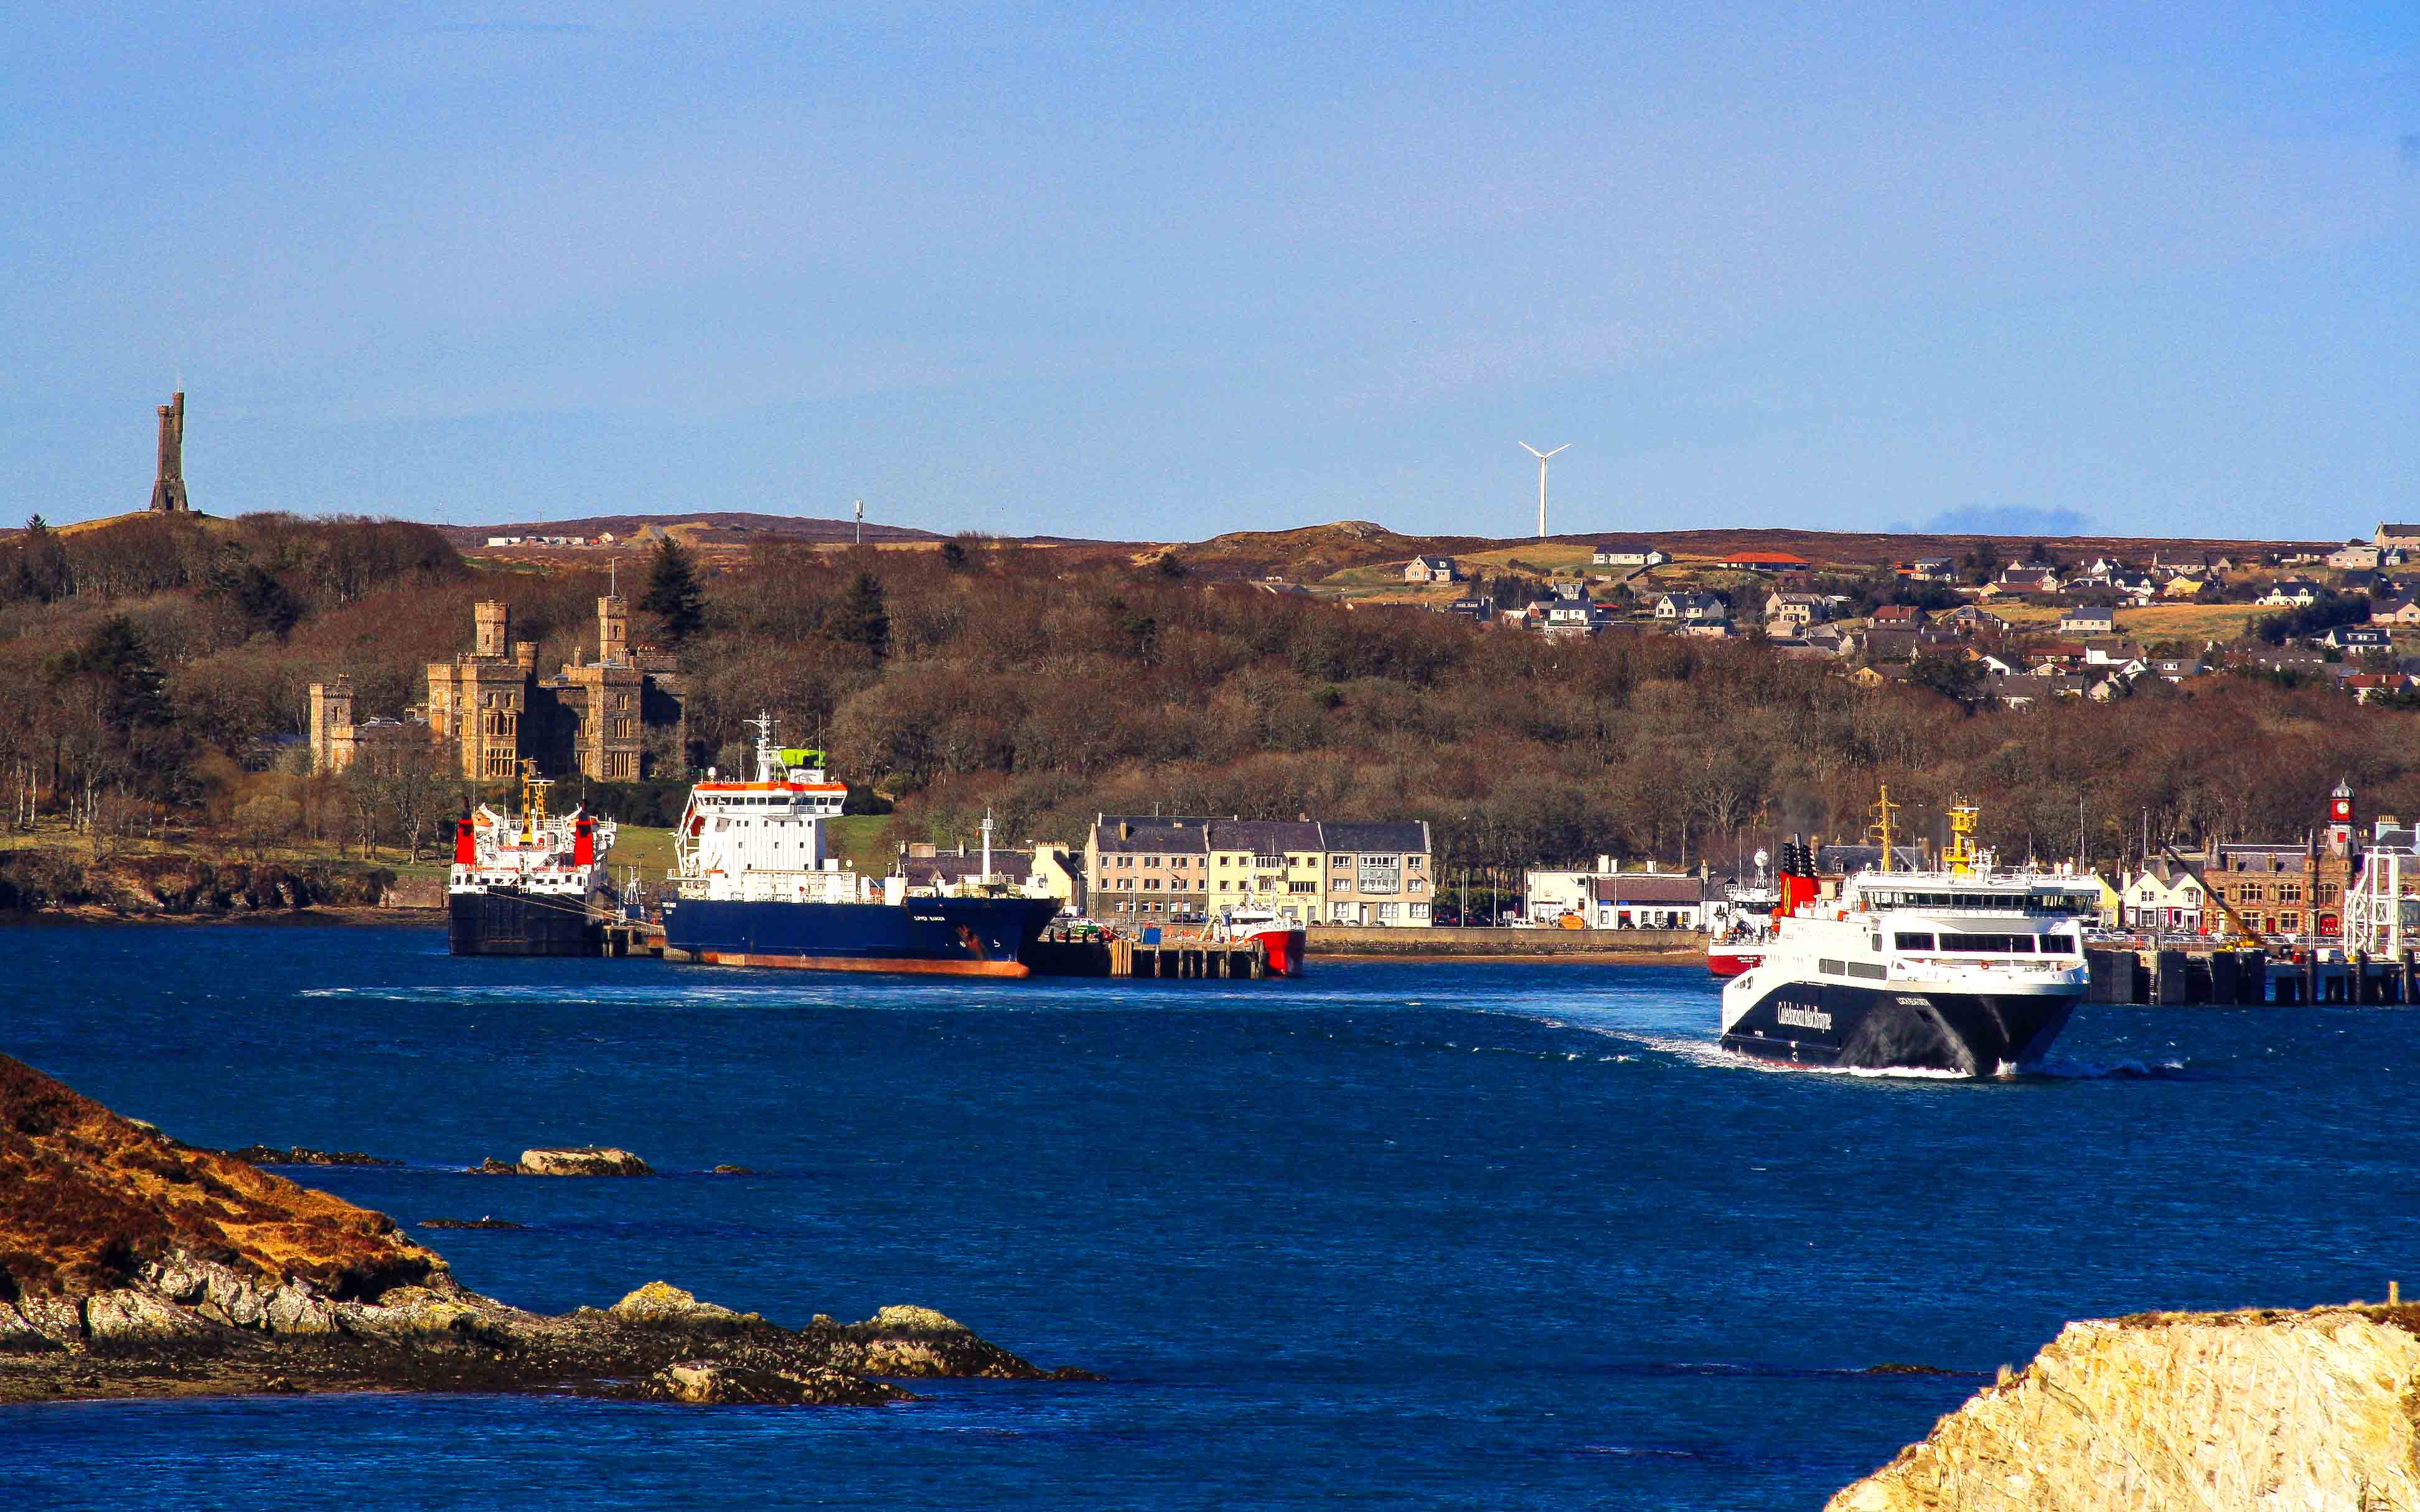 Loch Seaforth, Clipper Ranger and Isle of Lewis at Stornoway (Ships of CalMac)